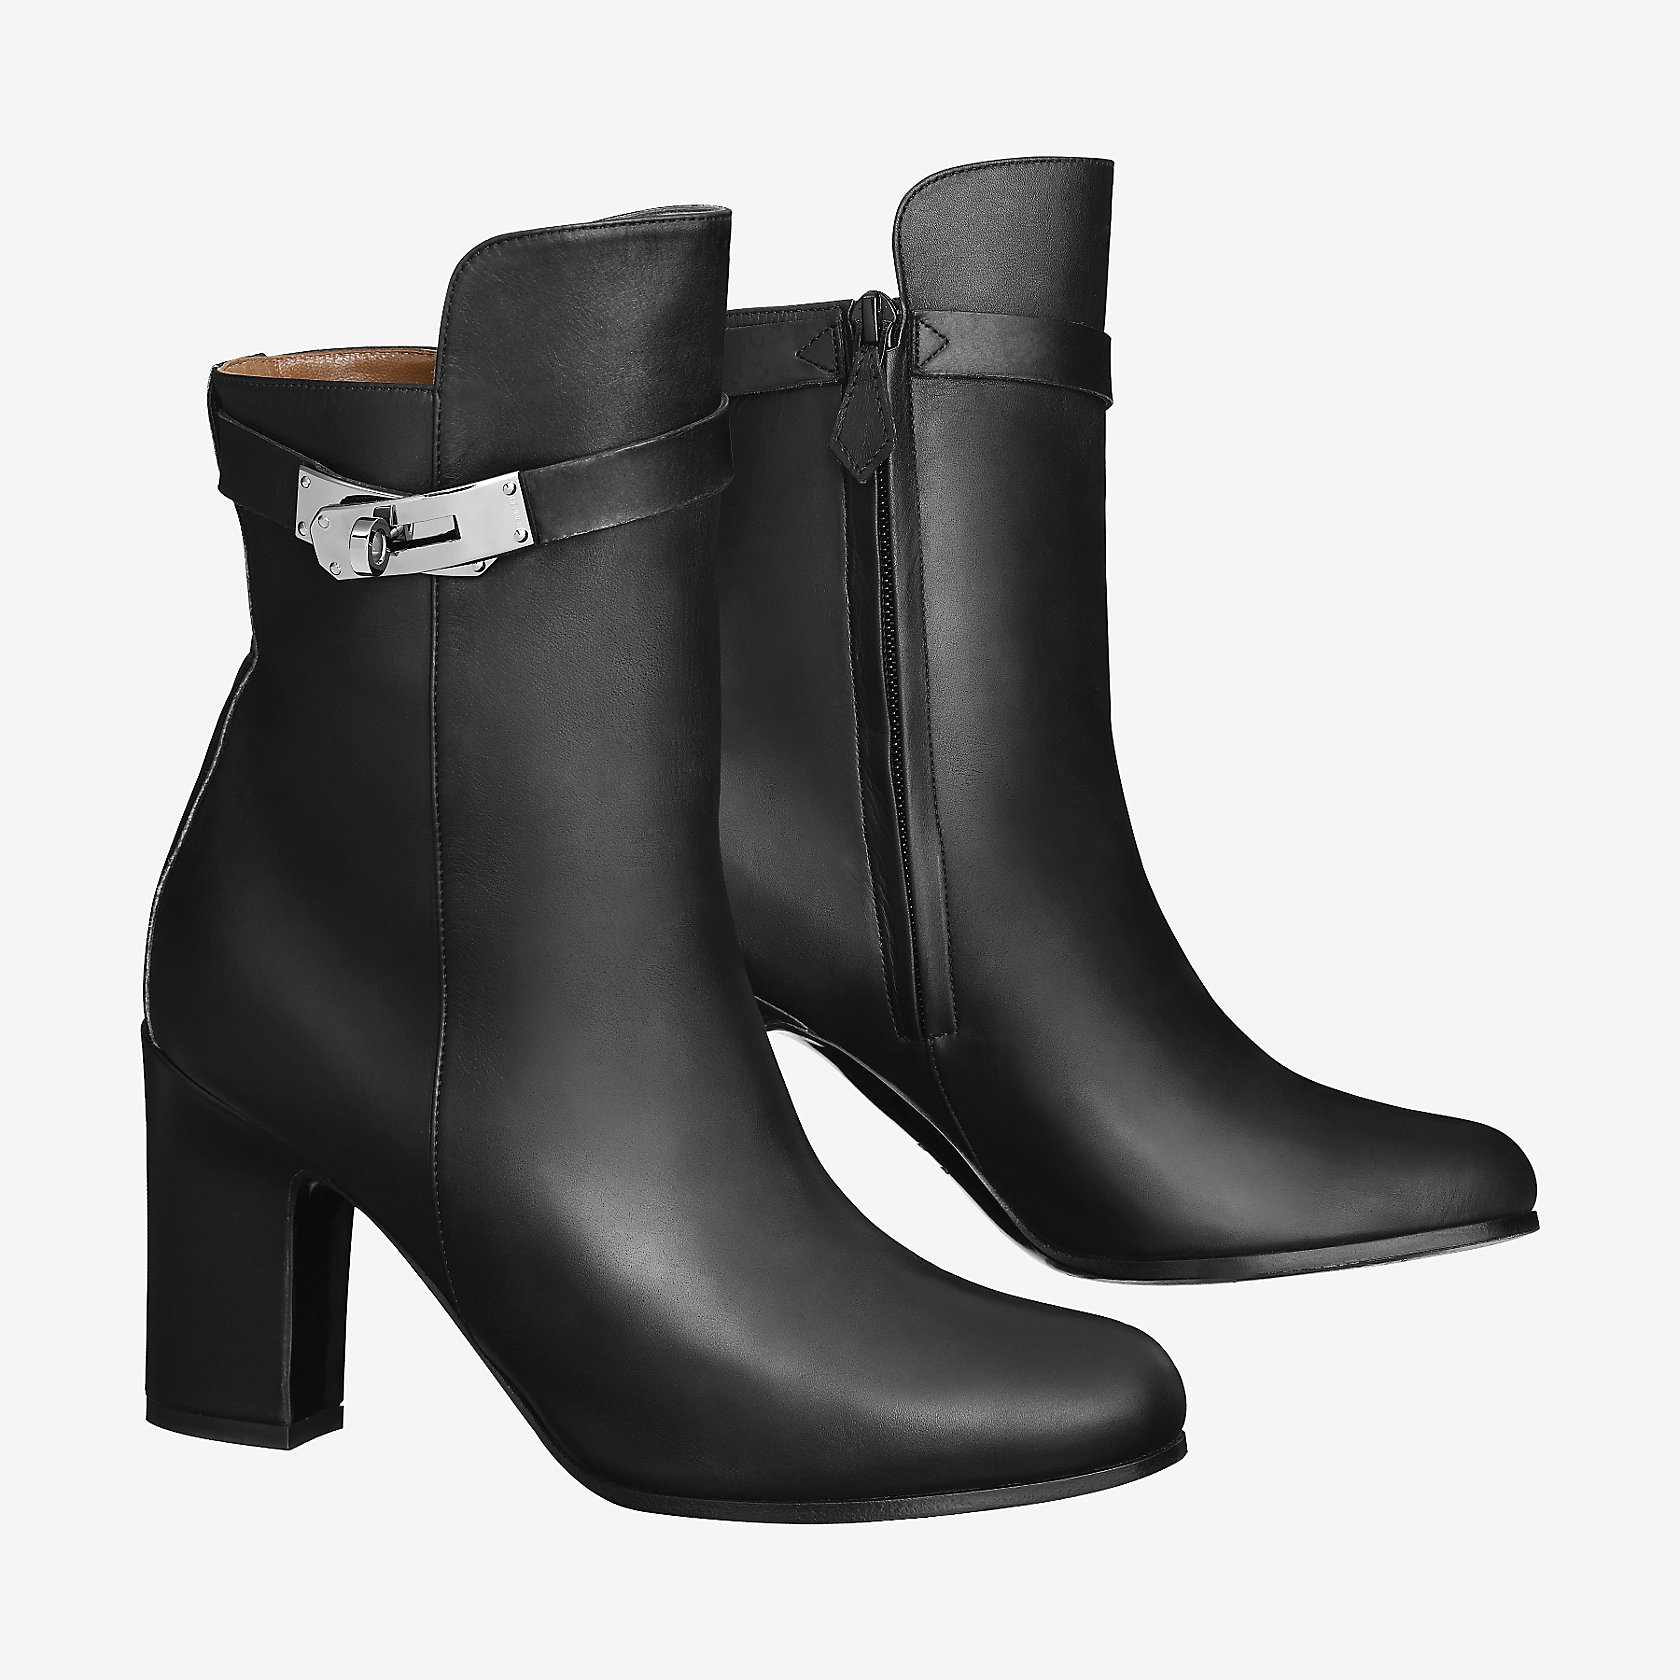 Joueuse ankle boot   Hermès 479a6be6755